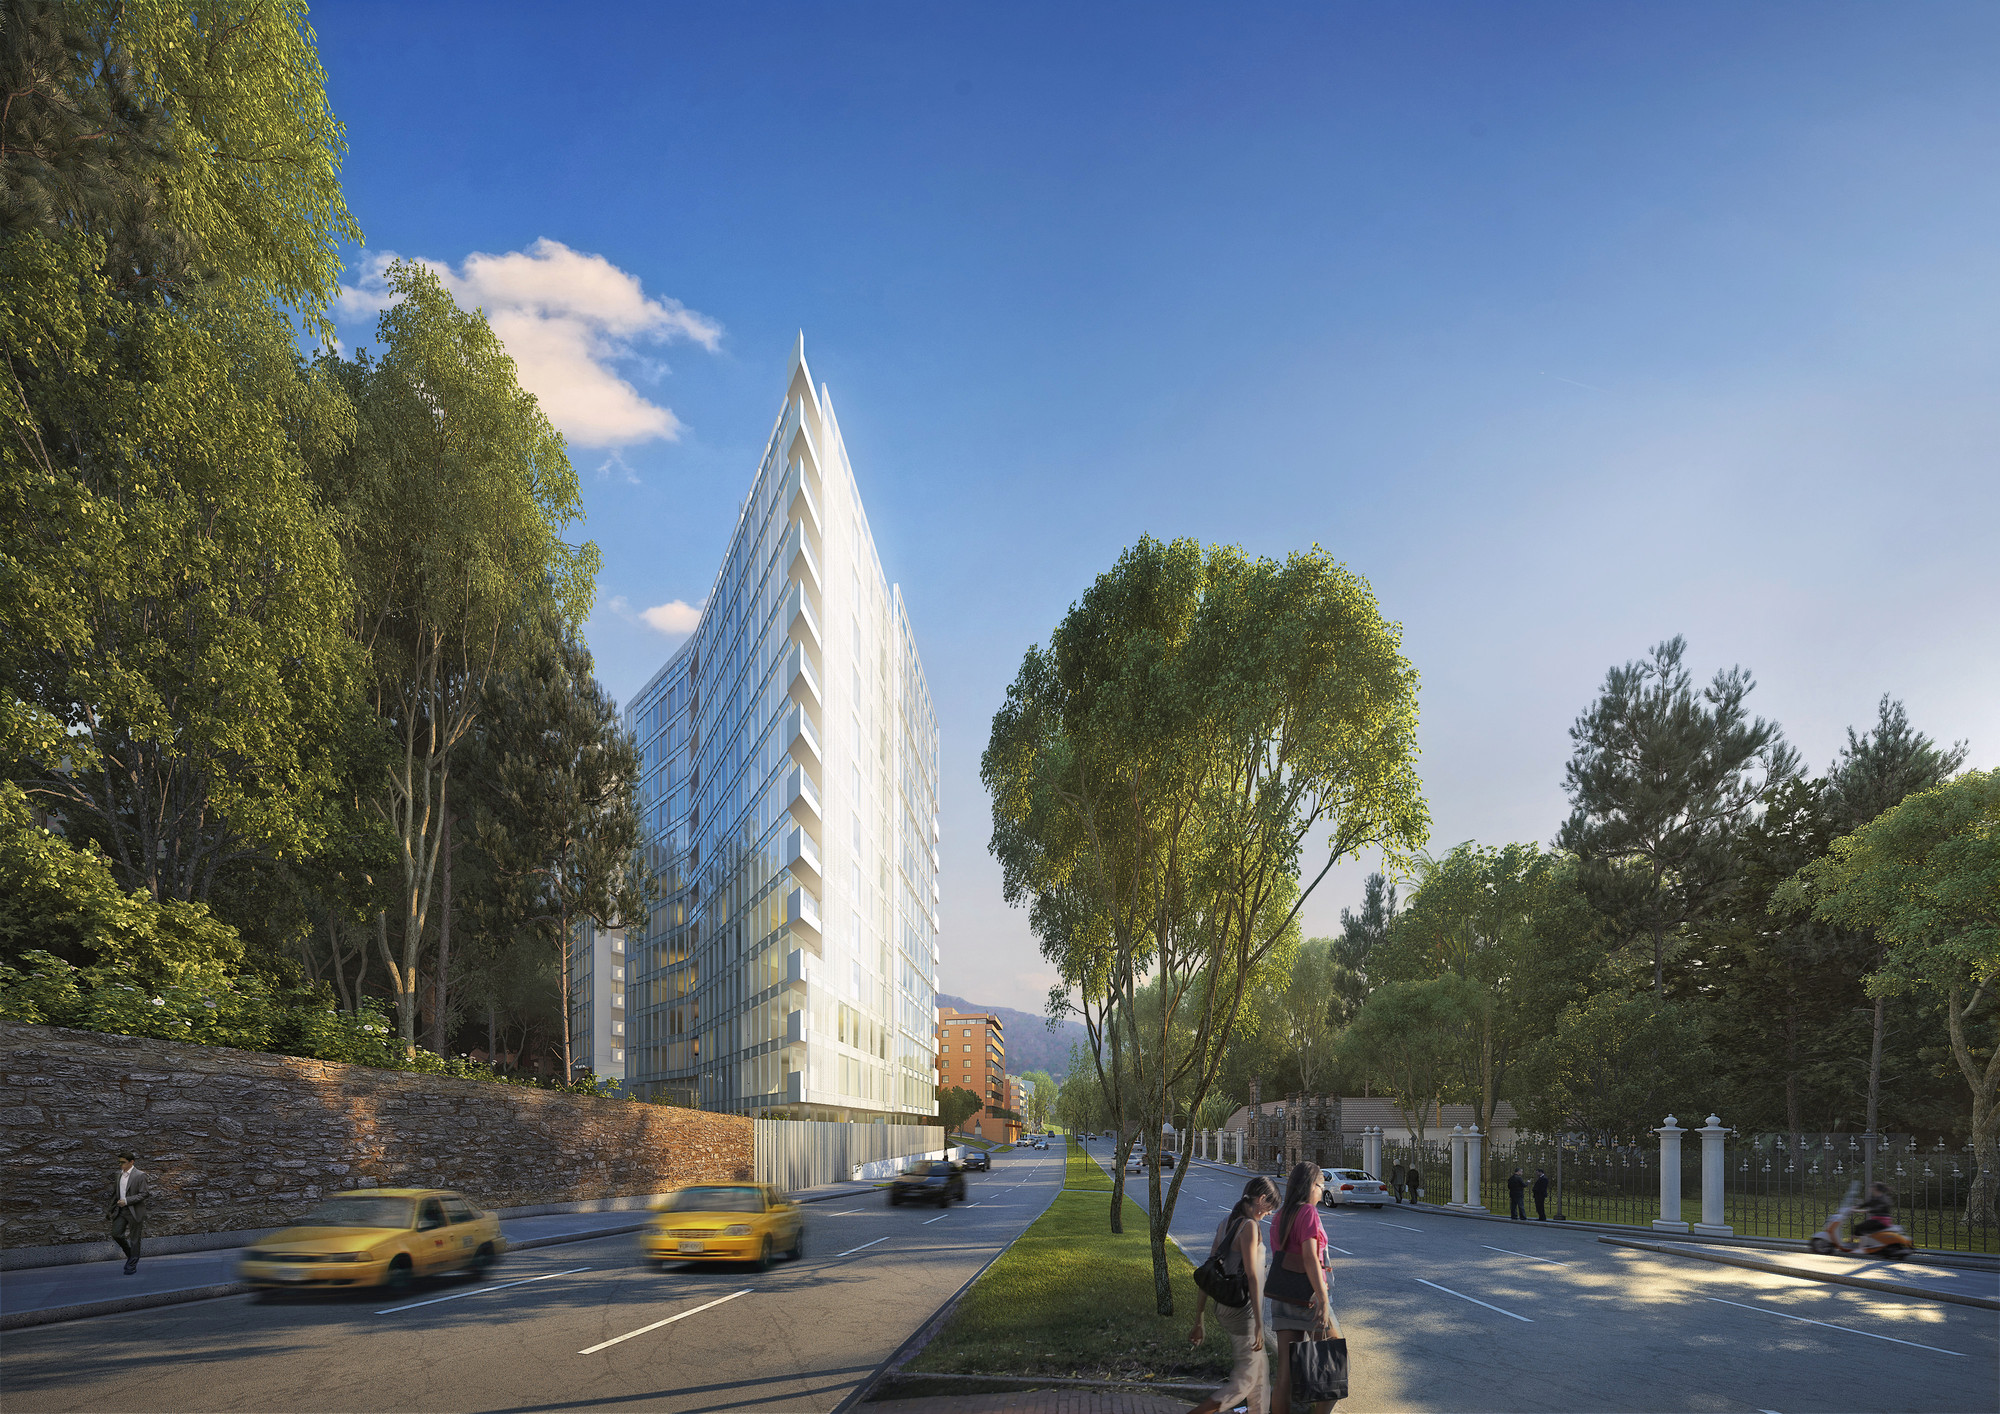 Richard Meier Designs Two-Tower Residential Development for Bogota, North View. Image Courtesy of Richard Meier & Partners